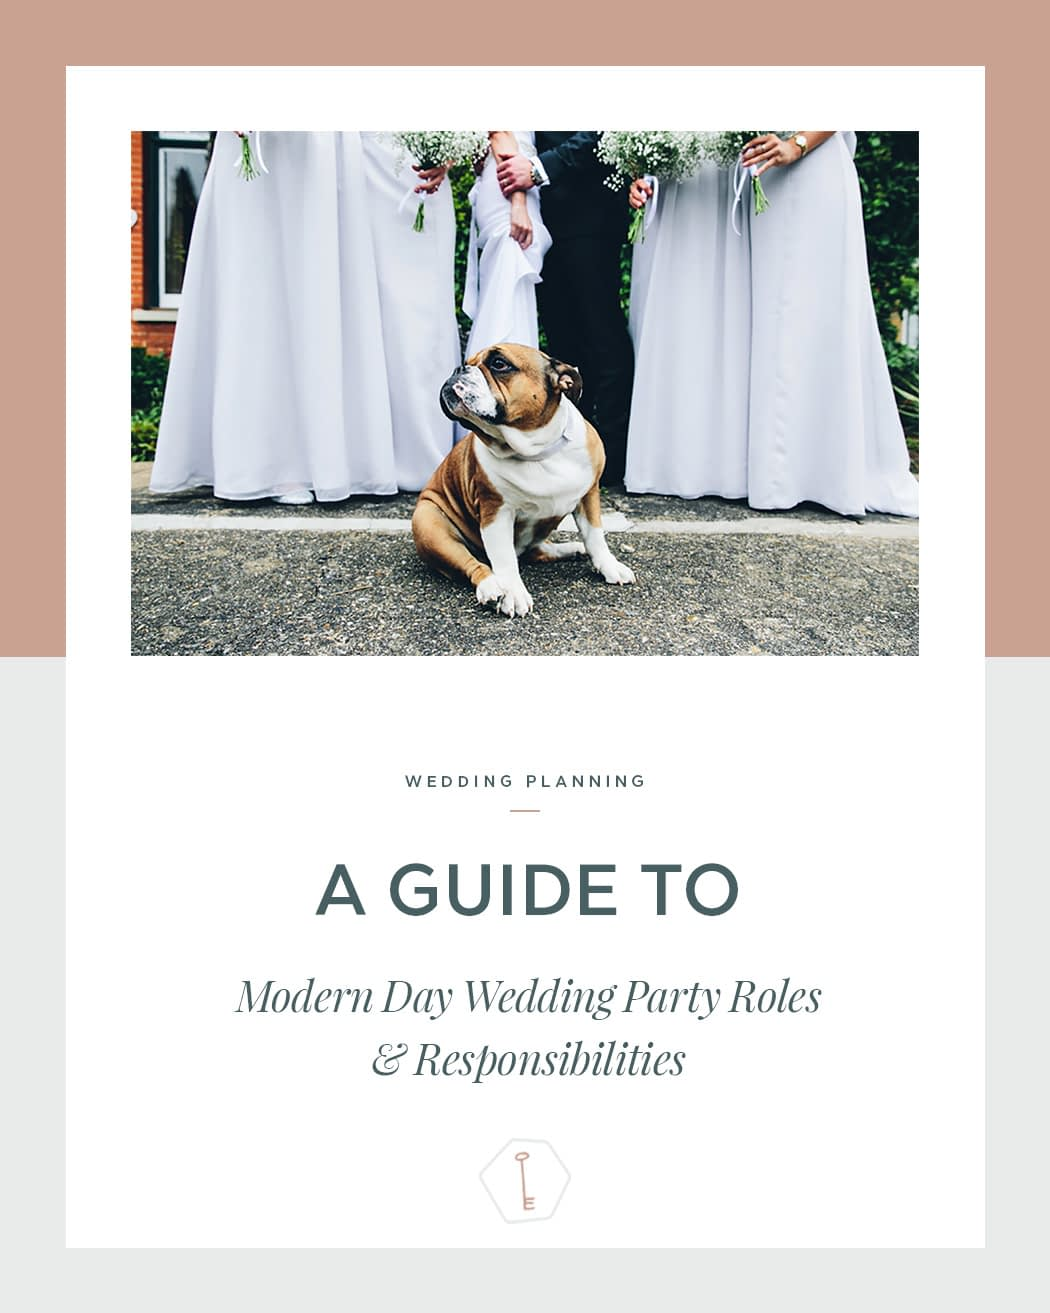 modern-day-wedding-party-roles-and-responsibilities-poster